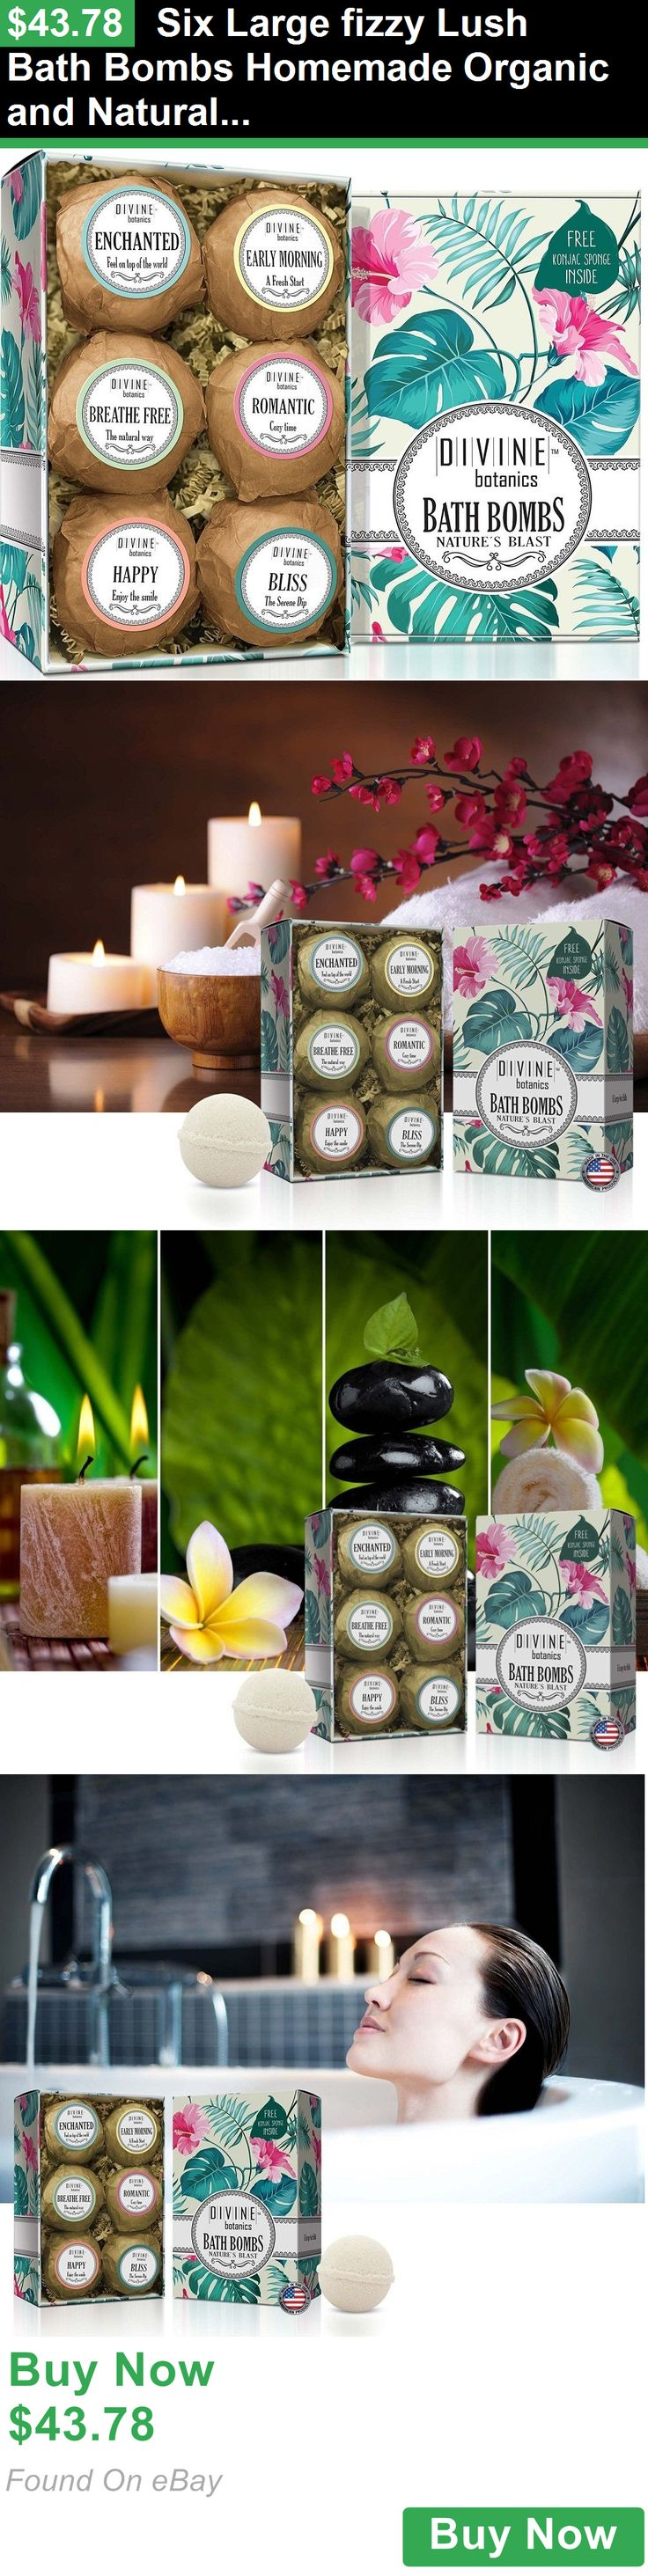 Bath Bombs and Fizzies 72759: Six Large Fizzy Lush Bath Bombs Homemade Organic And Natural + Konjac Sponge BUY IT NOW ONLY: $43.78